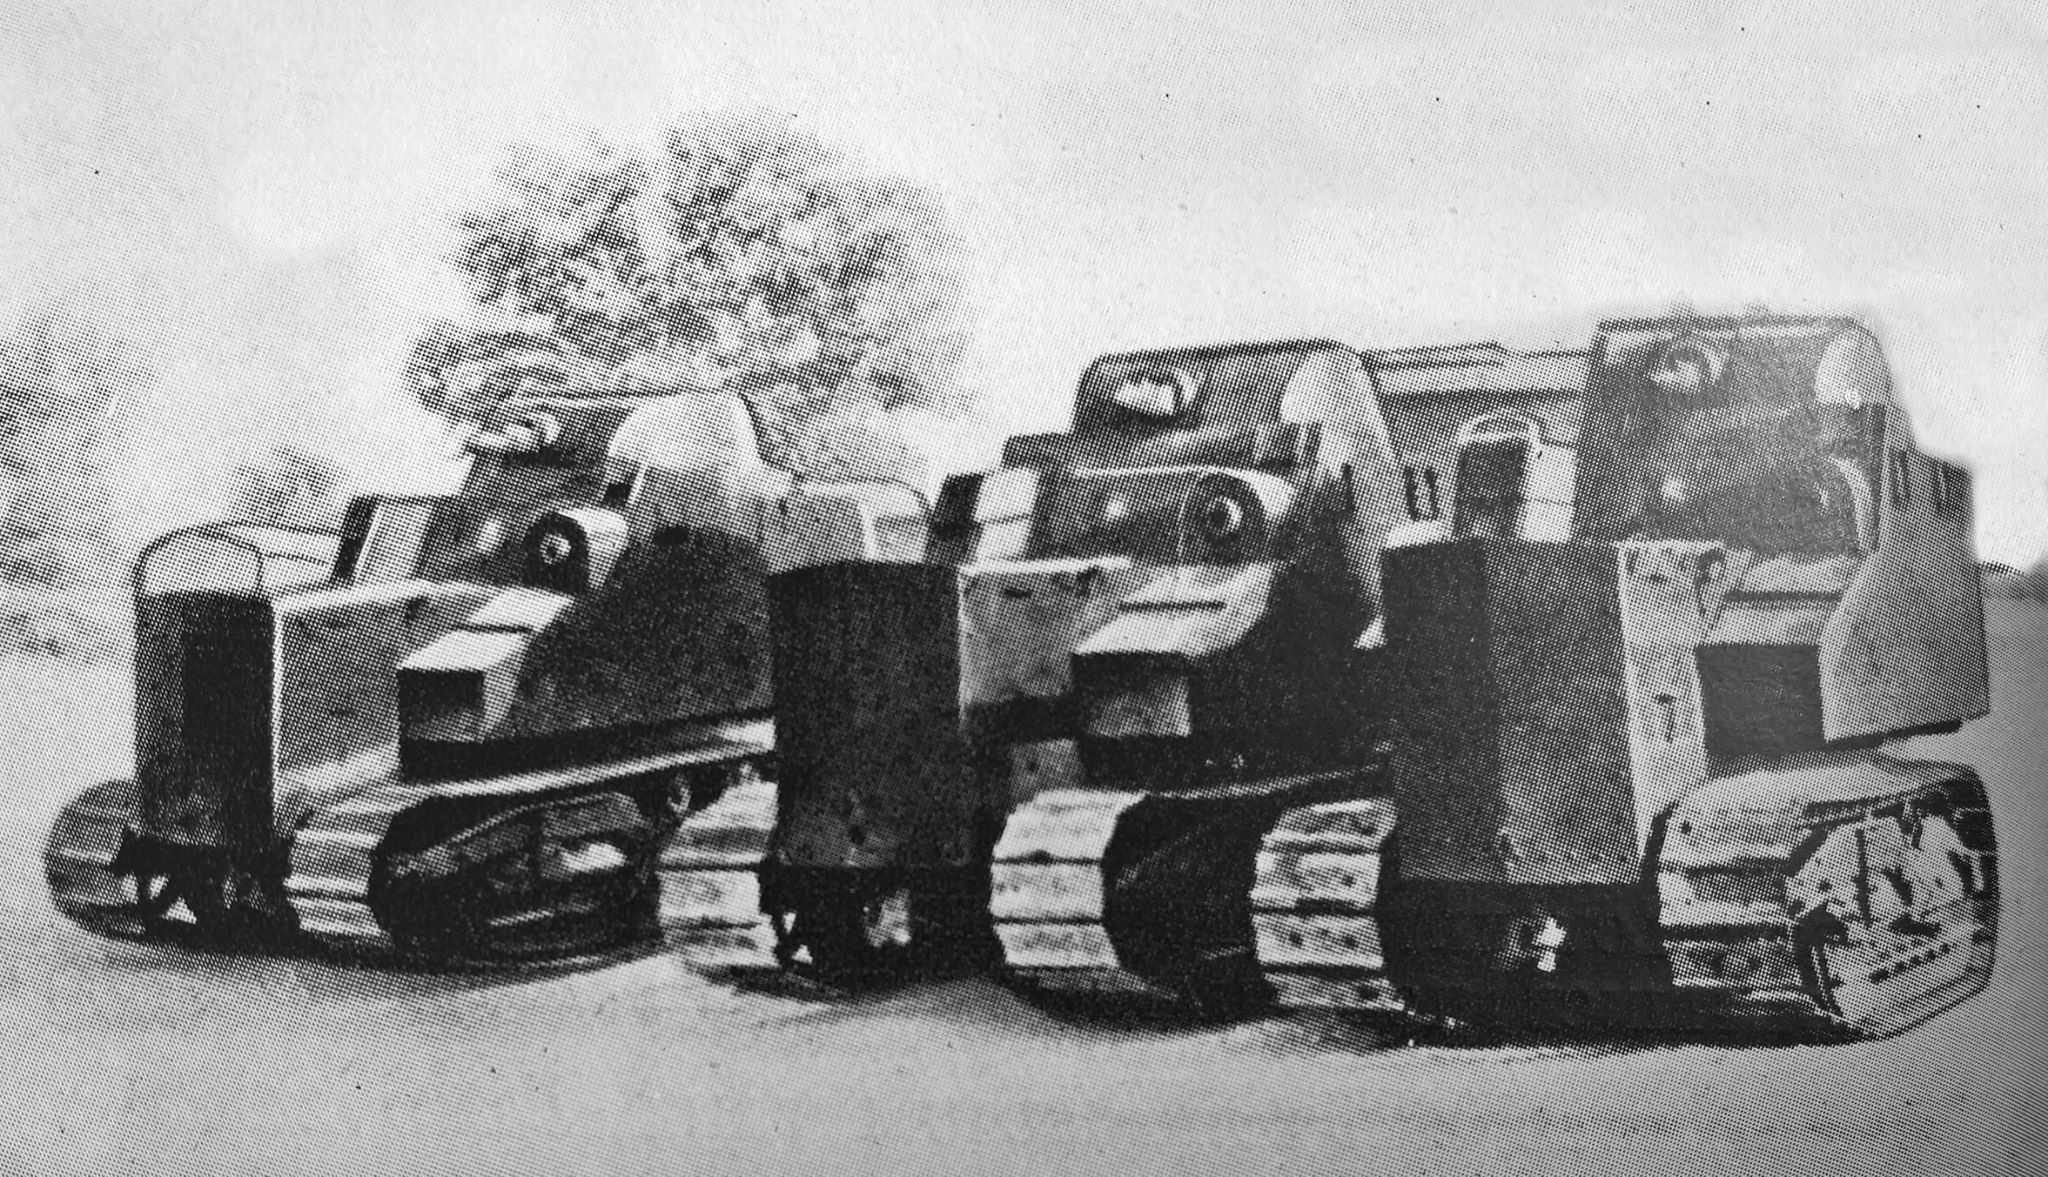 Poor quality photo of several Disston Tractor Tanks. Their exact hull shapes appear slightly different to one another